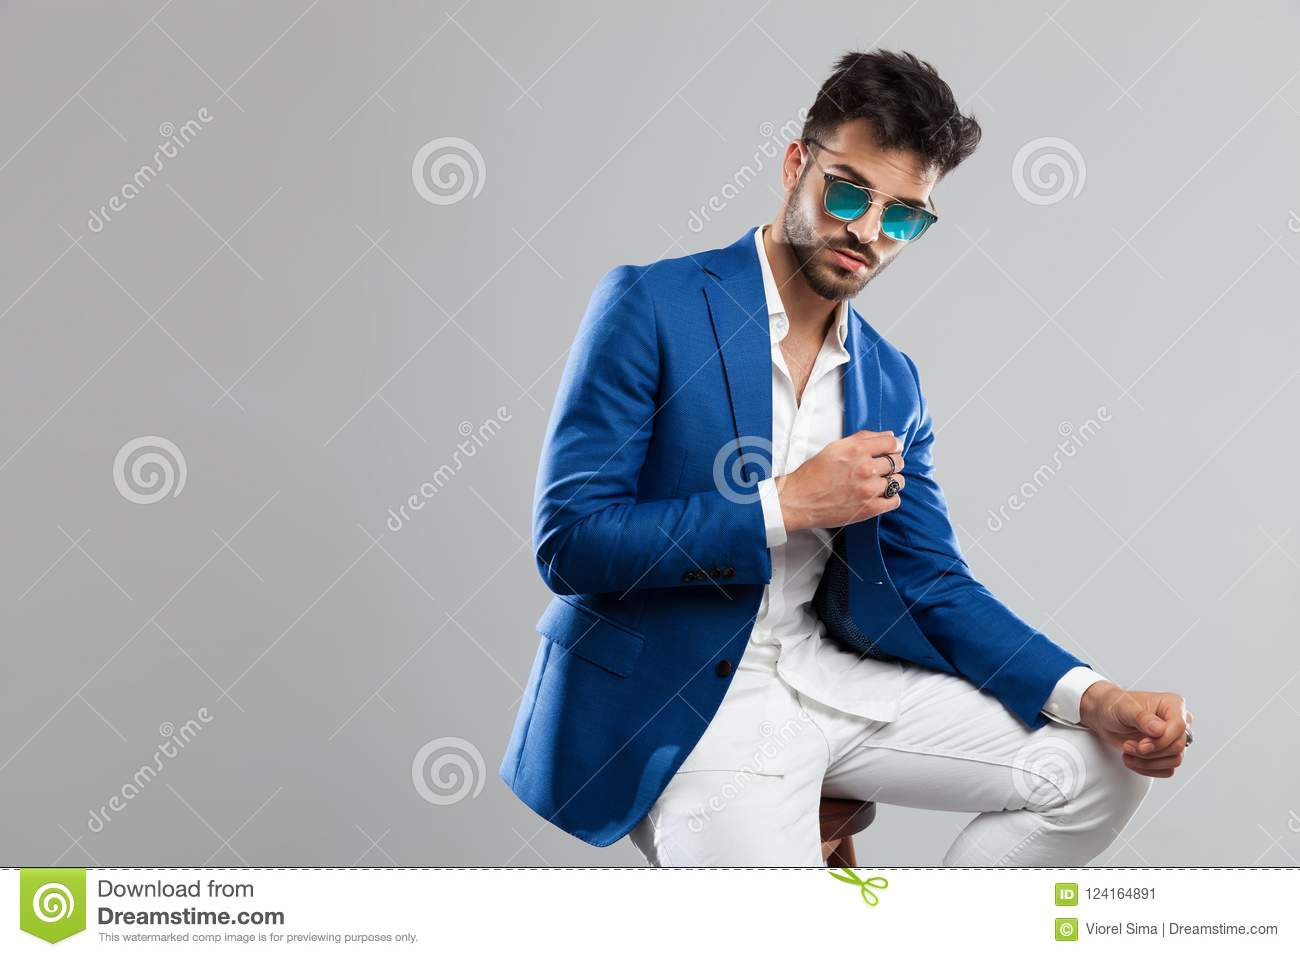 8c69e3e79b55 Portrait of smart casual man wearing sunglasses resting his elbow on his  knee while sitting on light grey background